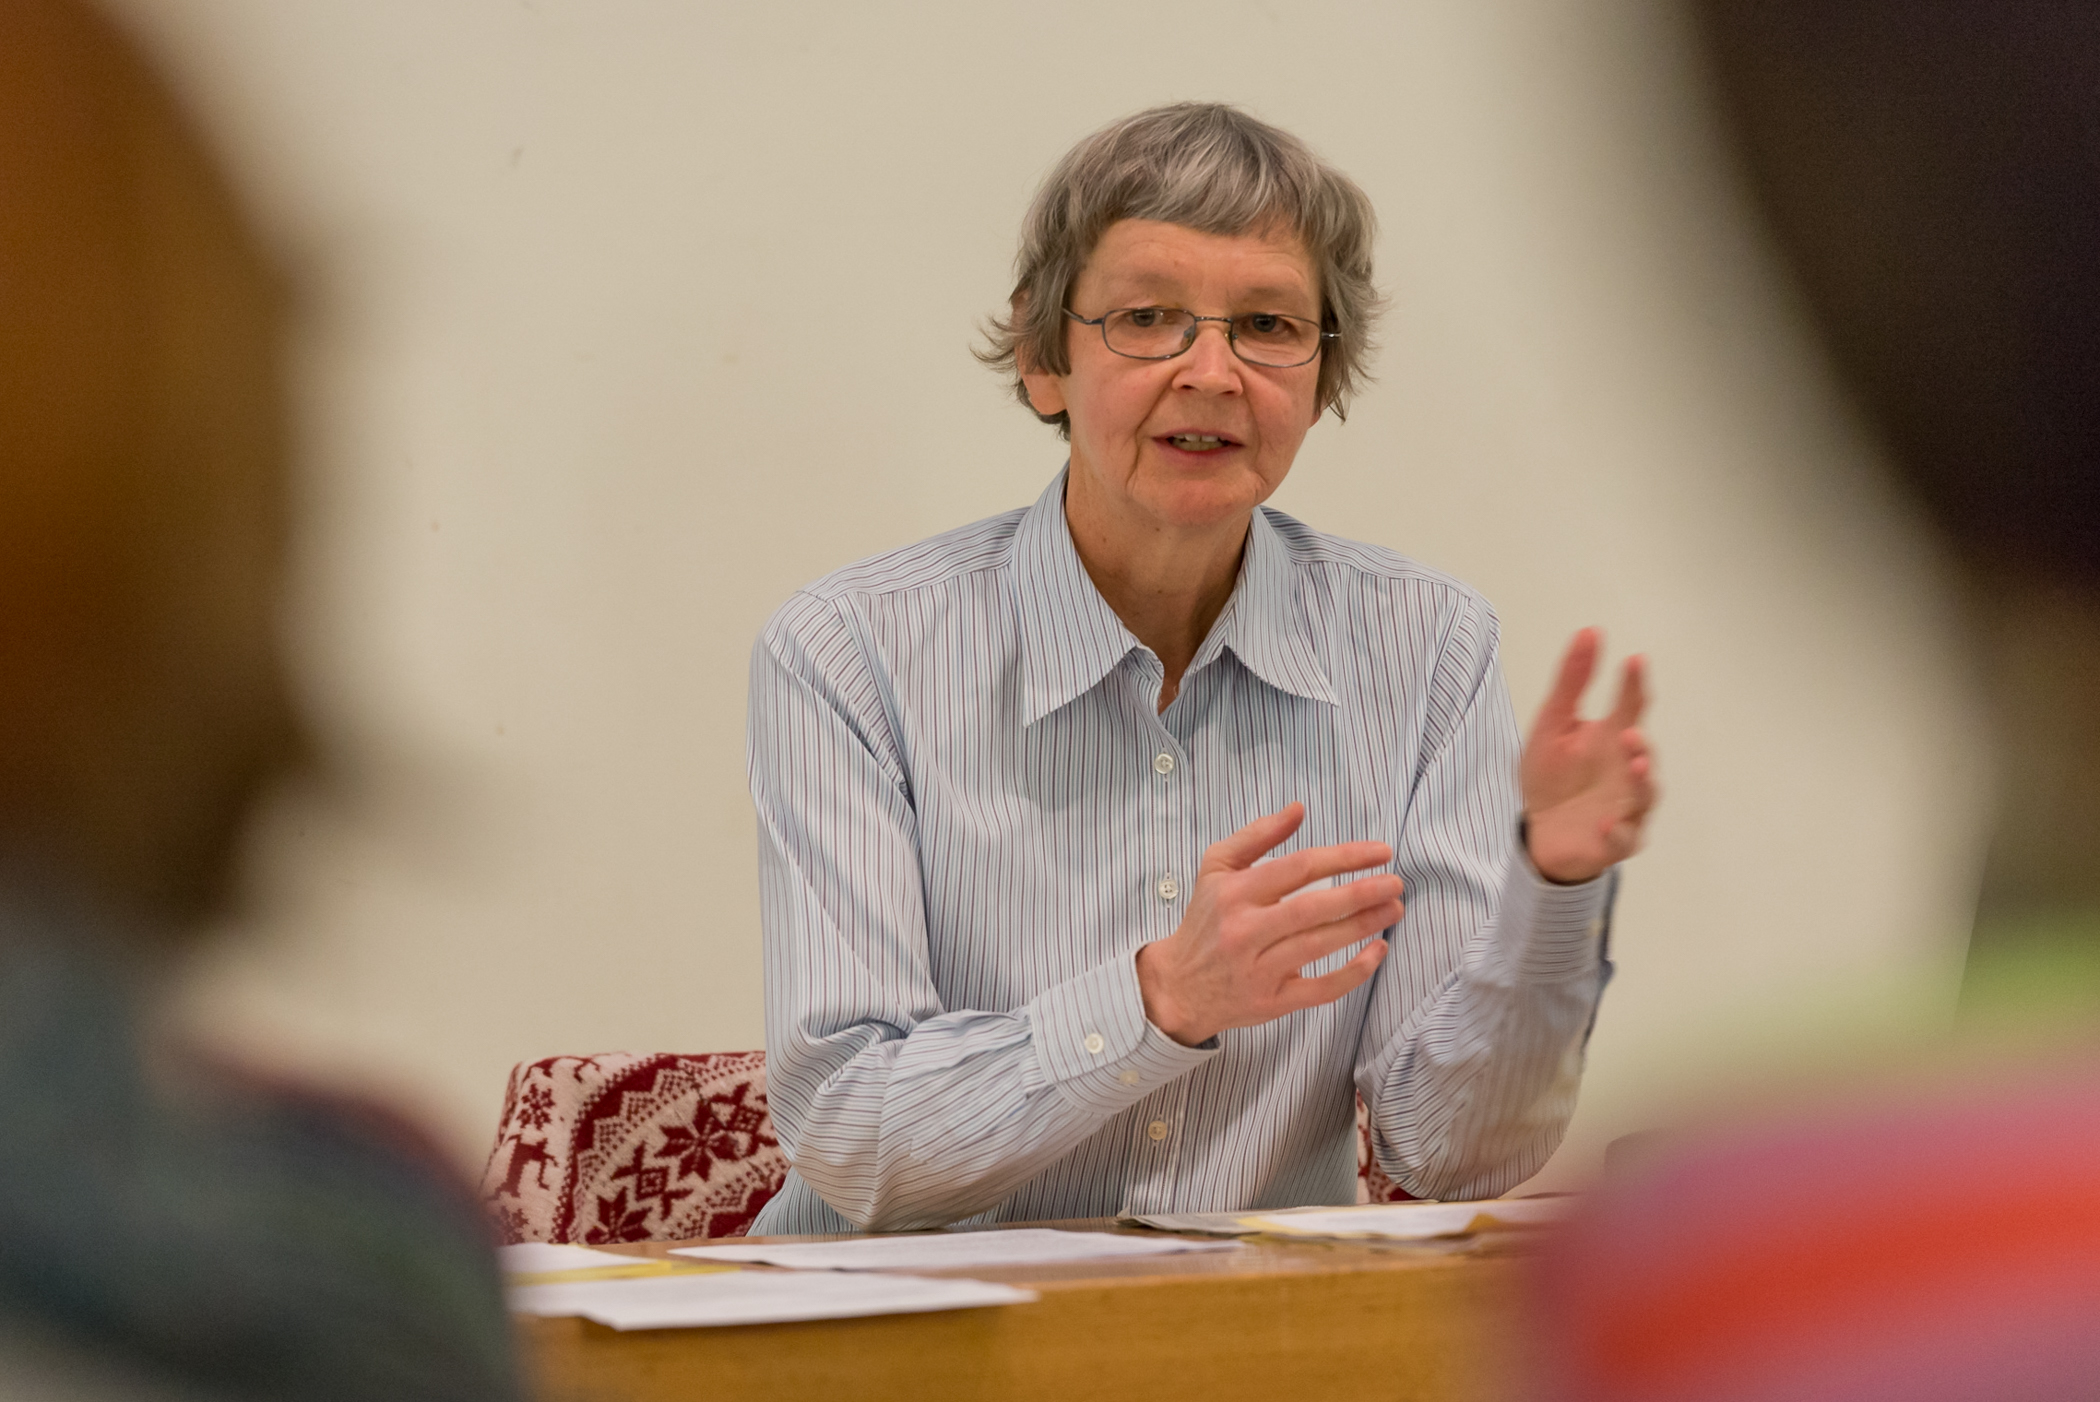 Kathrin Pope, of Wycliffe Switzerland, leads a shorter version of the German for Refugees course at the Gellertkirche, in Basel, Switzerland. Kathrin's mother tongue is Swiss German [gsw]. The German for Refugees course is a train-the-trainer course designed to equip Swiss to teach their language to recently arriving refugees.